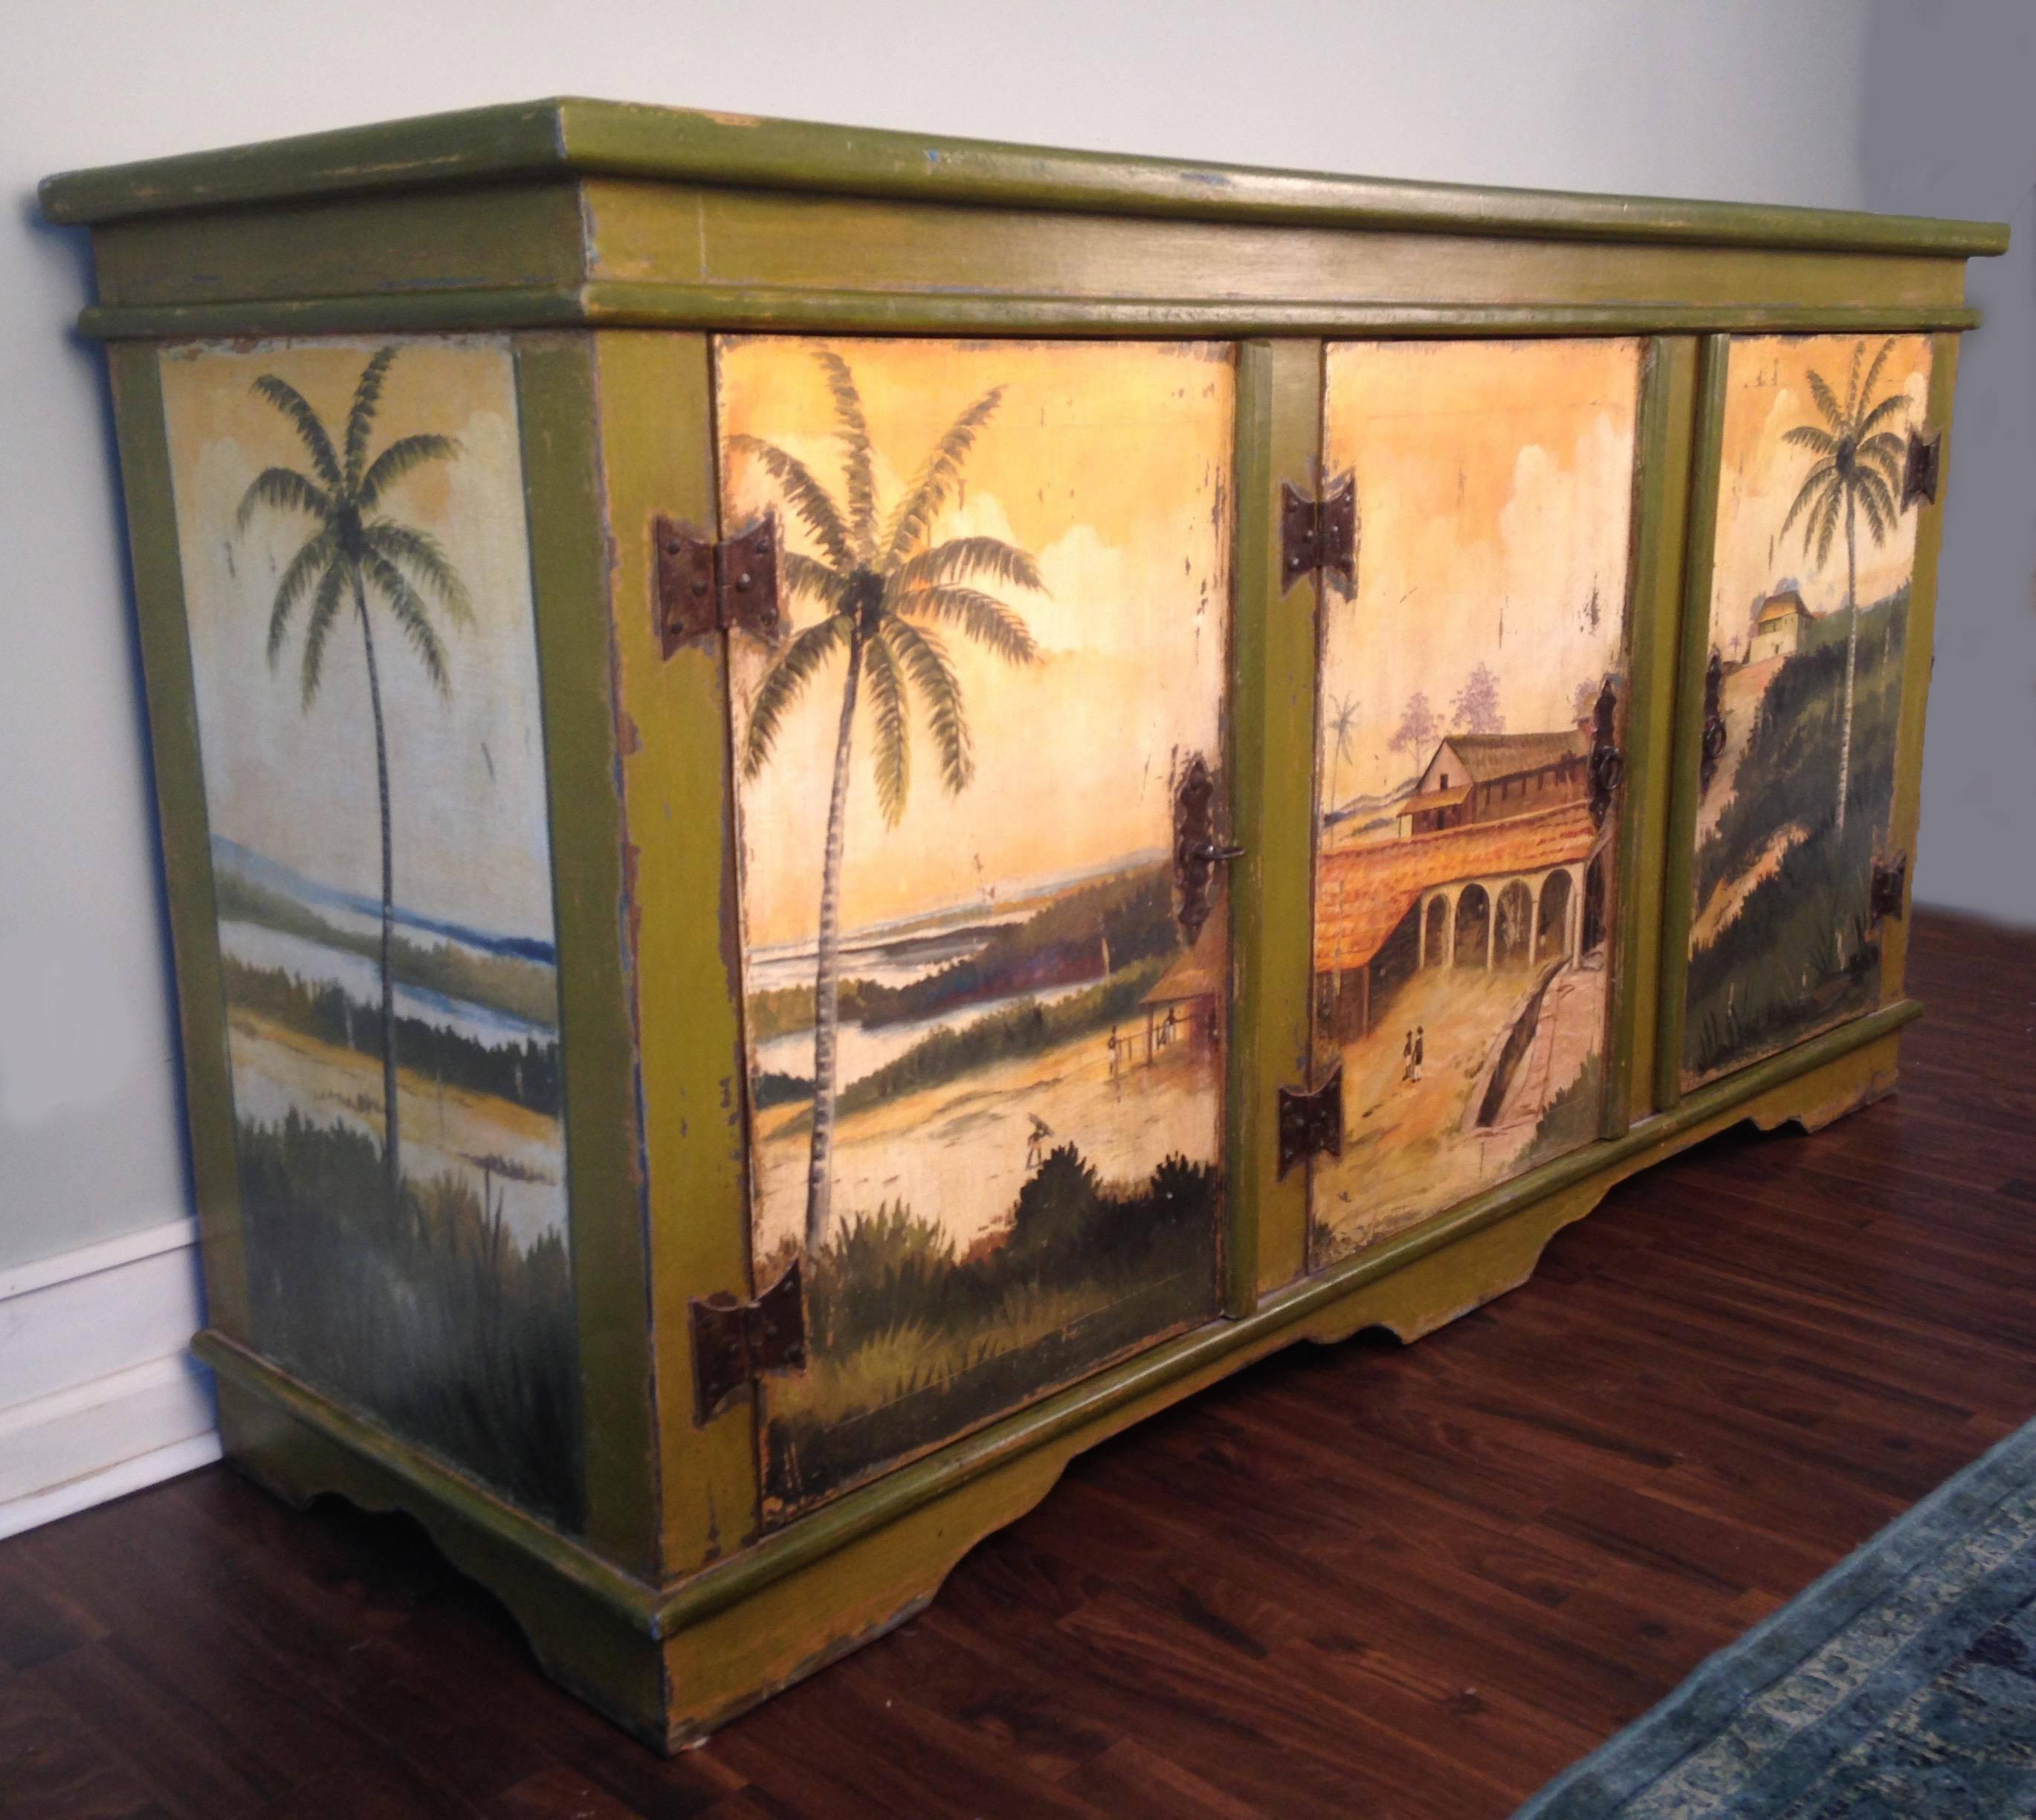 Hand Crafted Artiero Brazil Tropical Palm Tree Hand Painted Cabinet For Sale